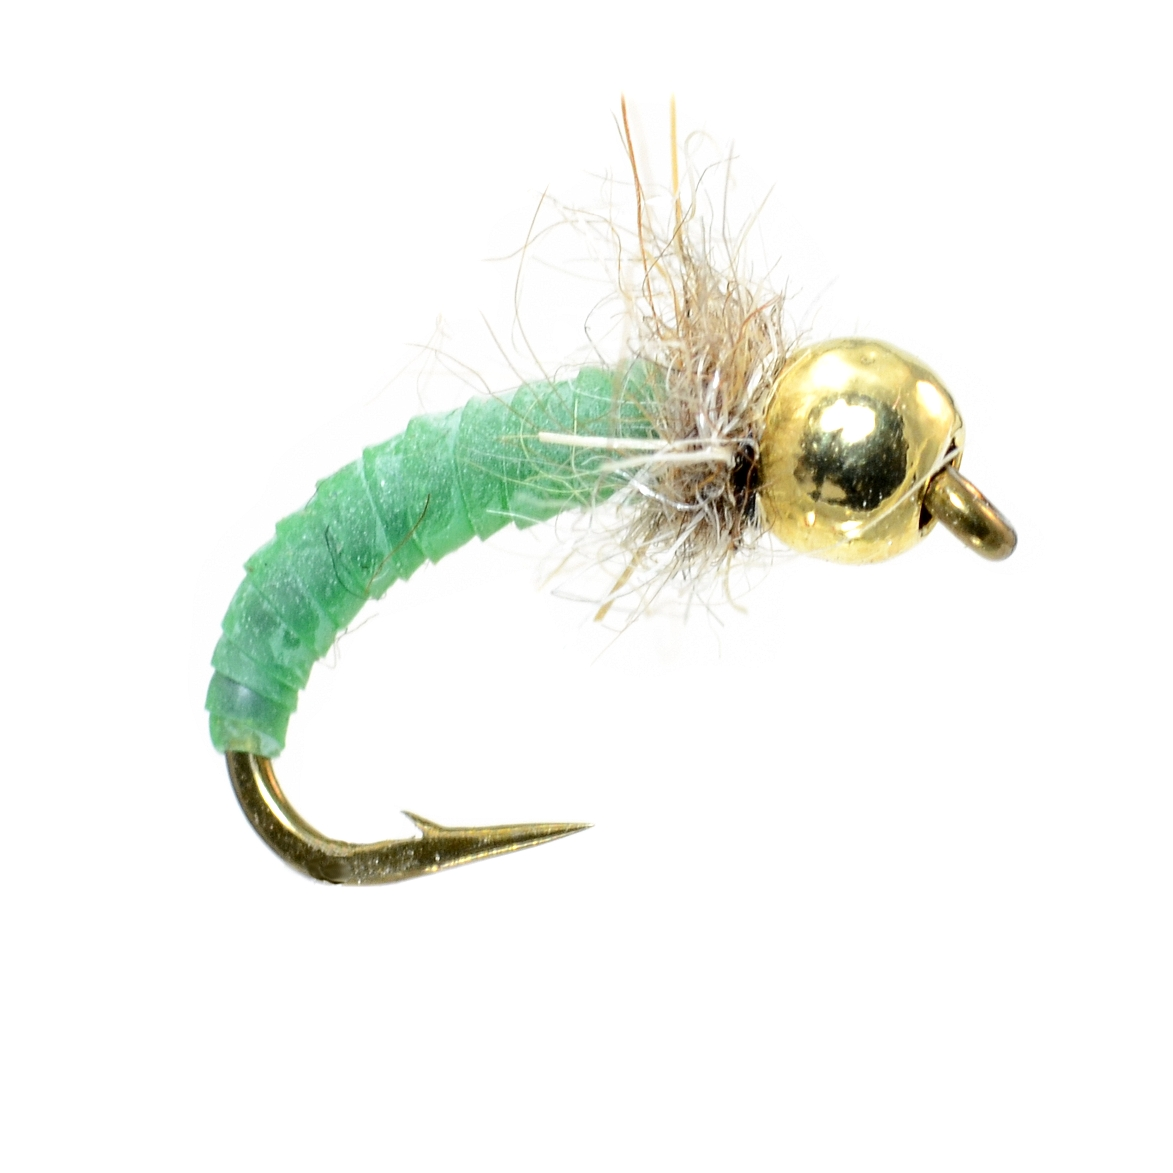 Beginner fly tying easy caddis pupa fly fish food for Fly fishing tying